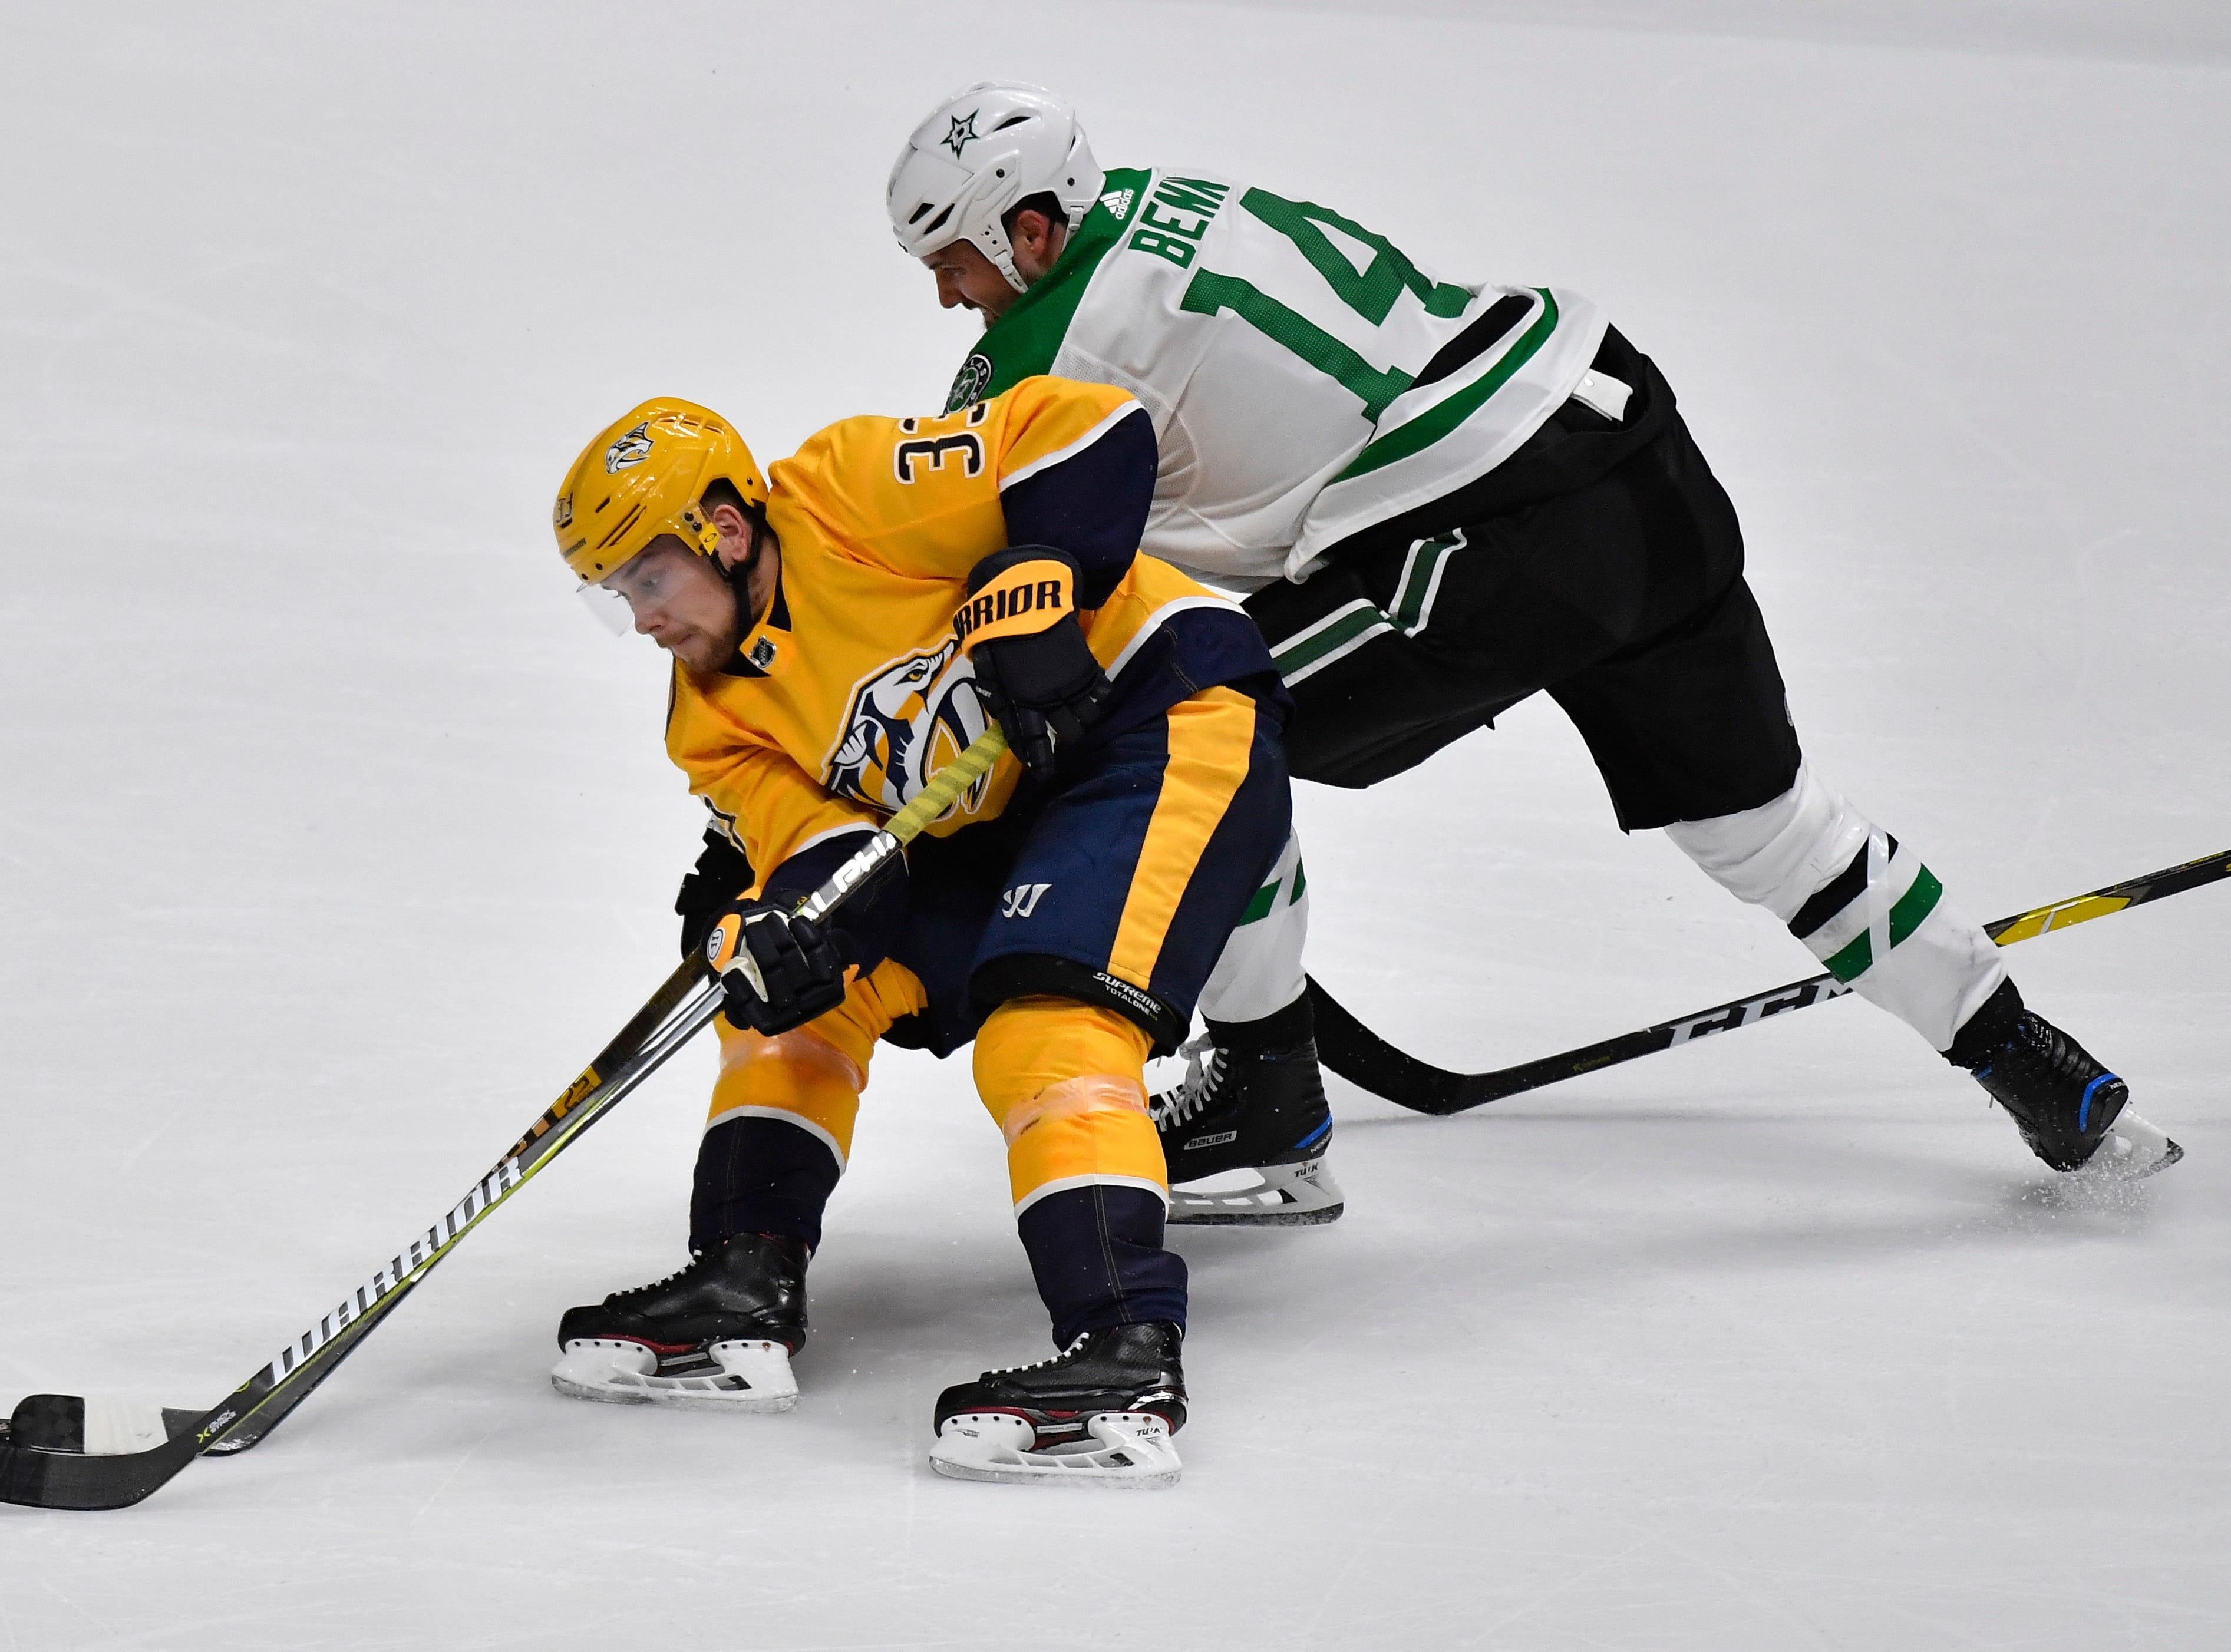 Nashville Predators right wing Viktor Arvidsson (33) and Dallas Stars left wing Jamie Benn (14) battle for the puck during the second period of the divisional semifinal game at Bridgestone Arena in Nashville, Tenn., Wednesday, April 10, 2019.